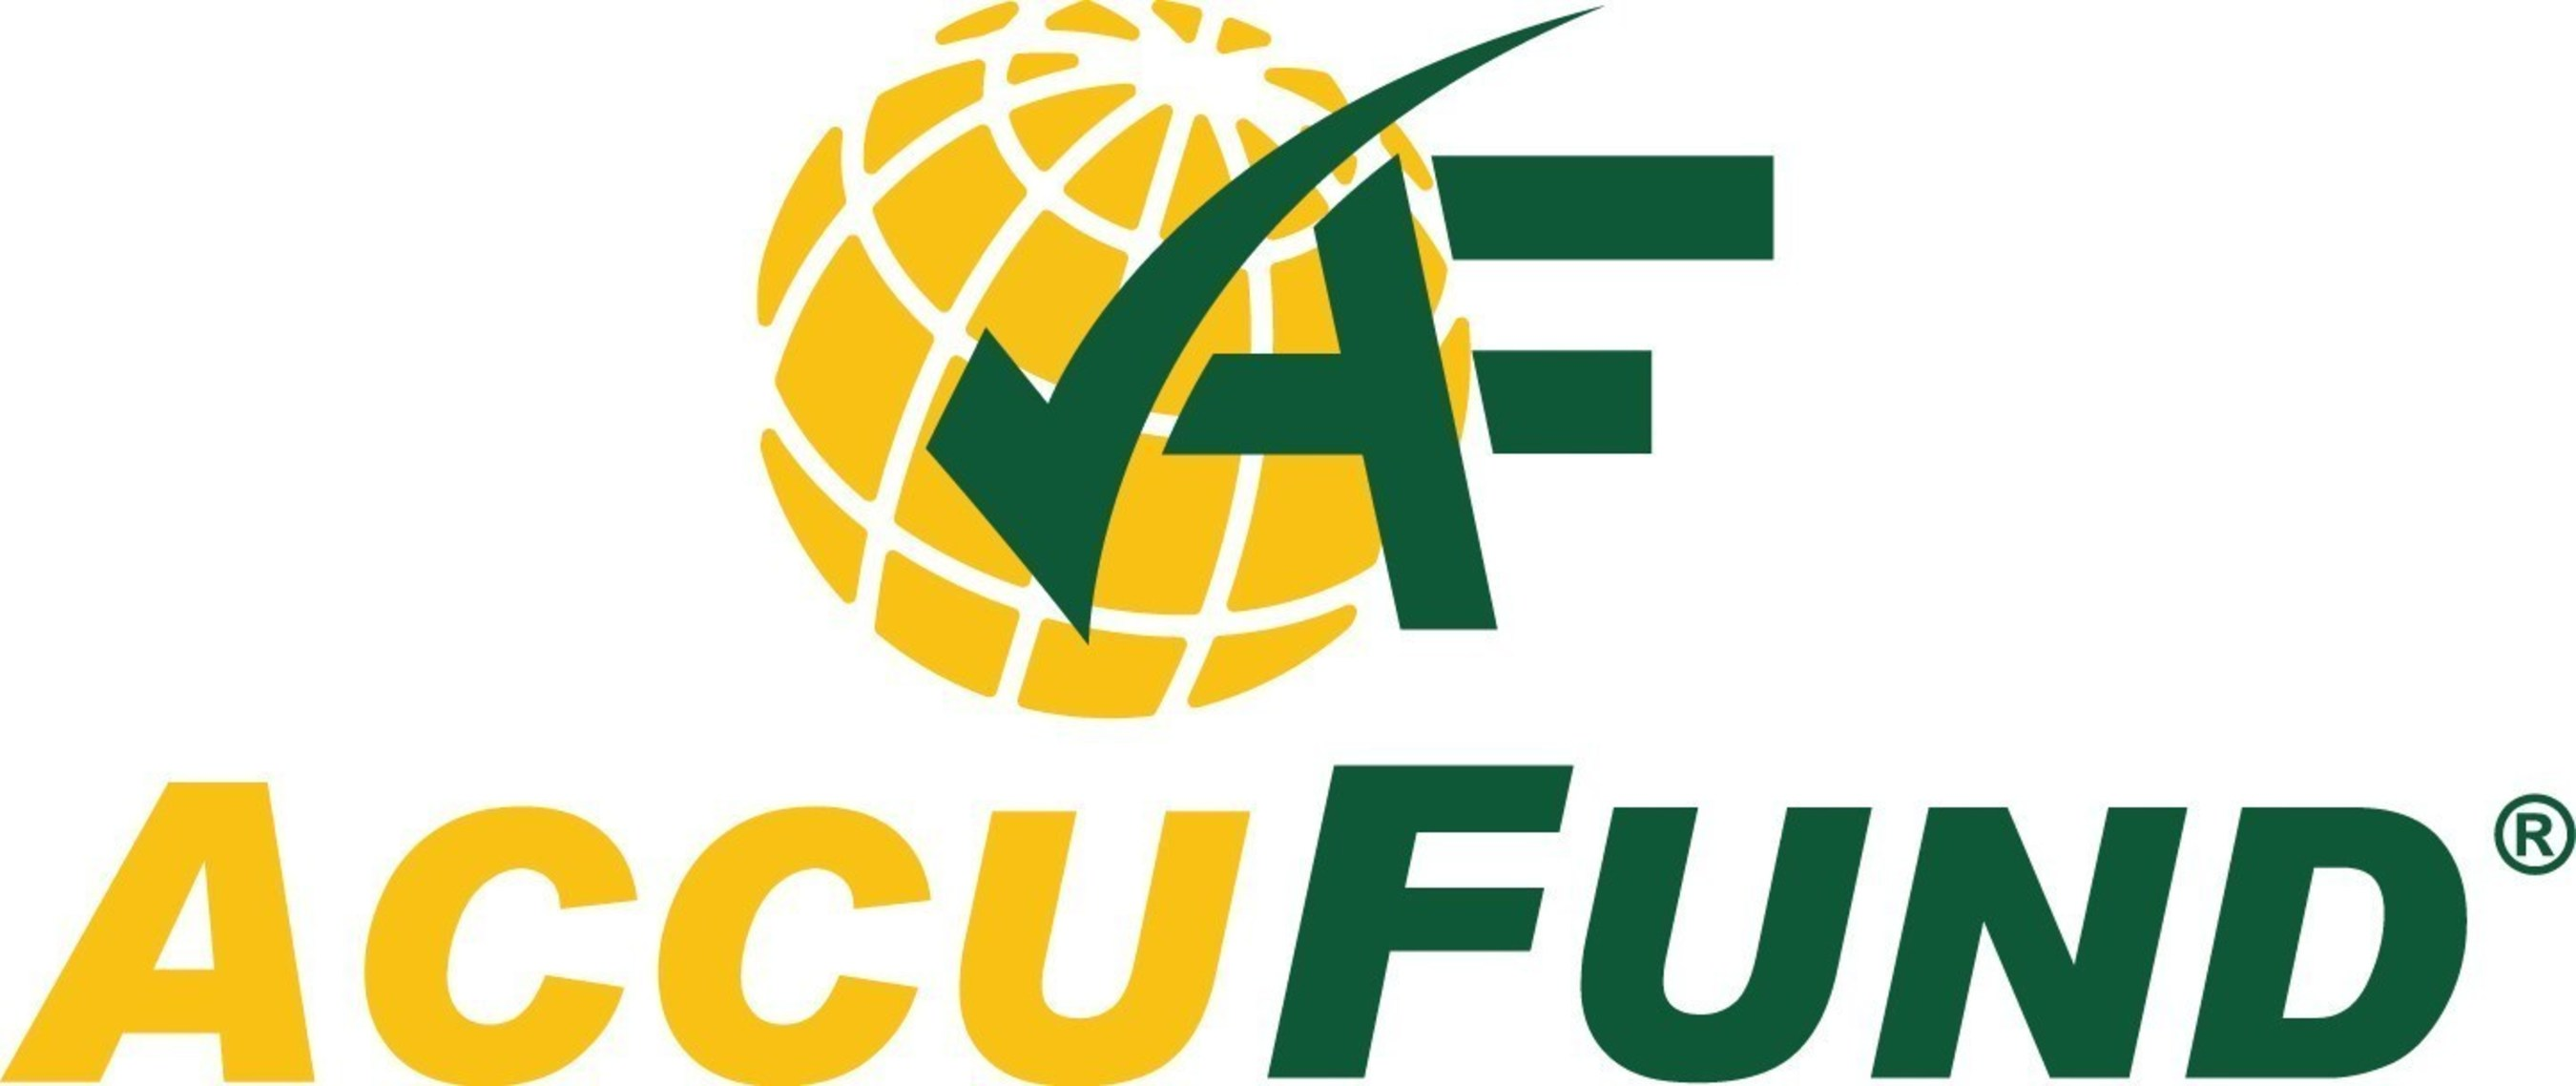 AccuFund Forms Technology Partnership with Real Vision Software to Provide Enhanced Document Imaging and Storage